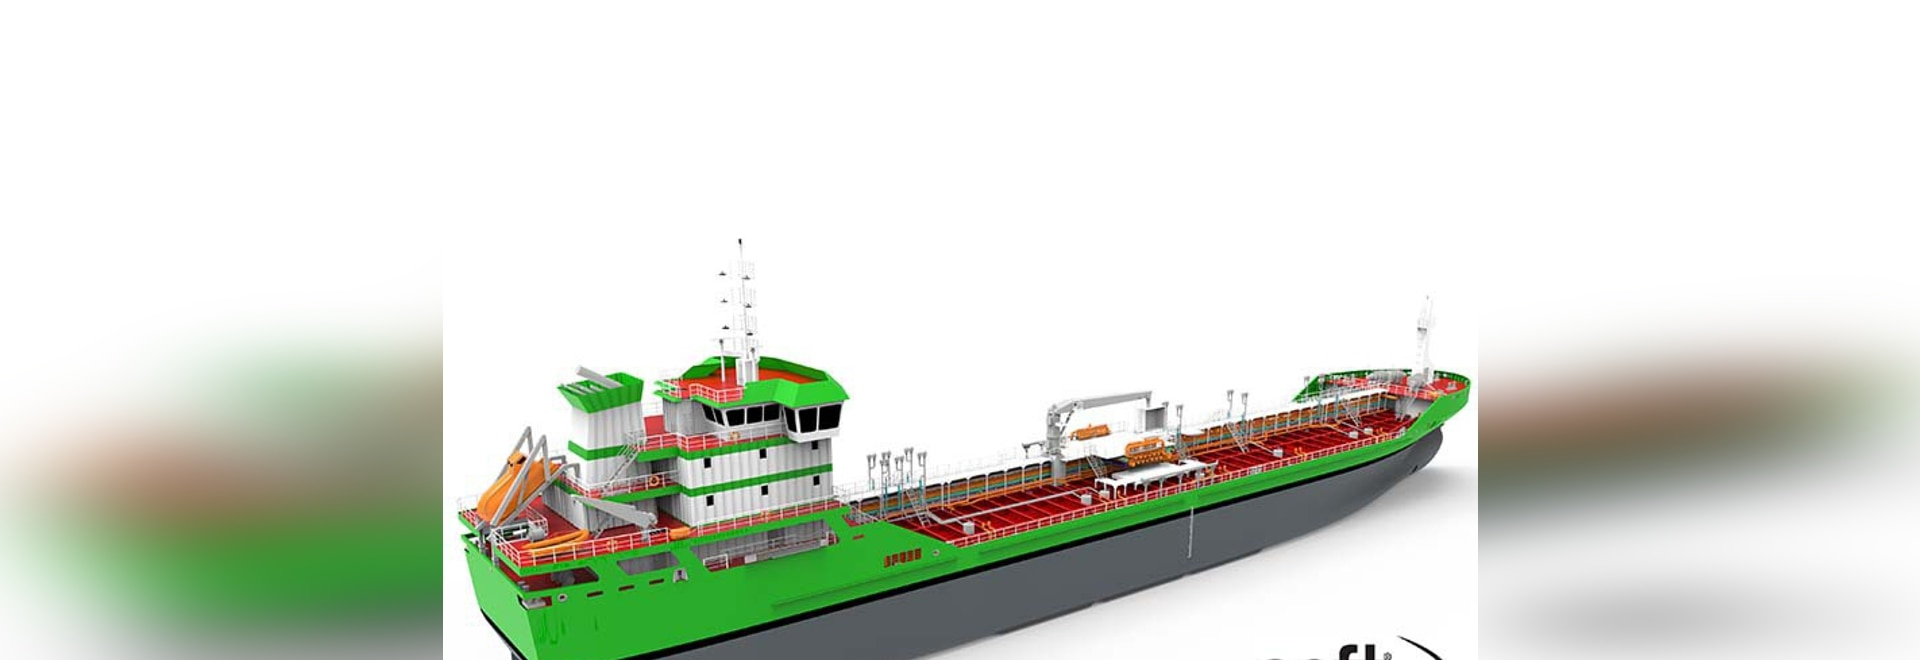 YMV CRANE AND WINCH SYSTEMS has signed a contract for complete deck equipment and all anchor and mooring equipment for newbuilding Chemcal Tanker in Istanbul Shipyard